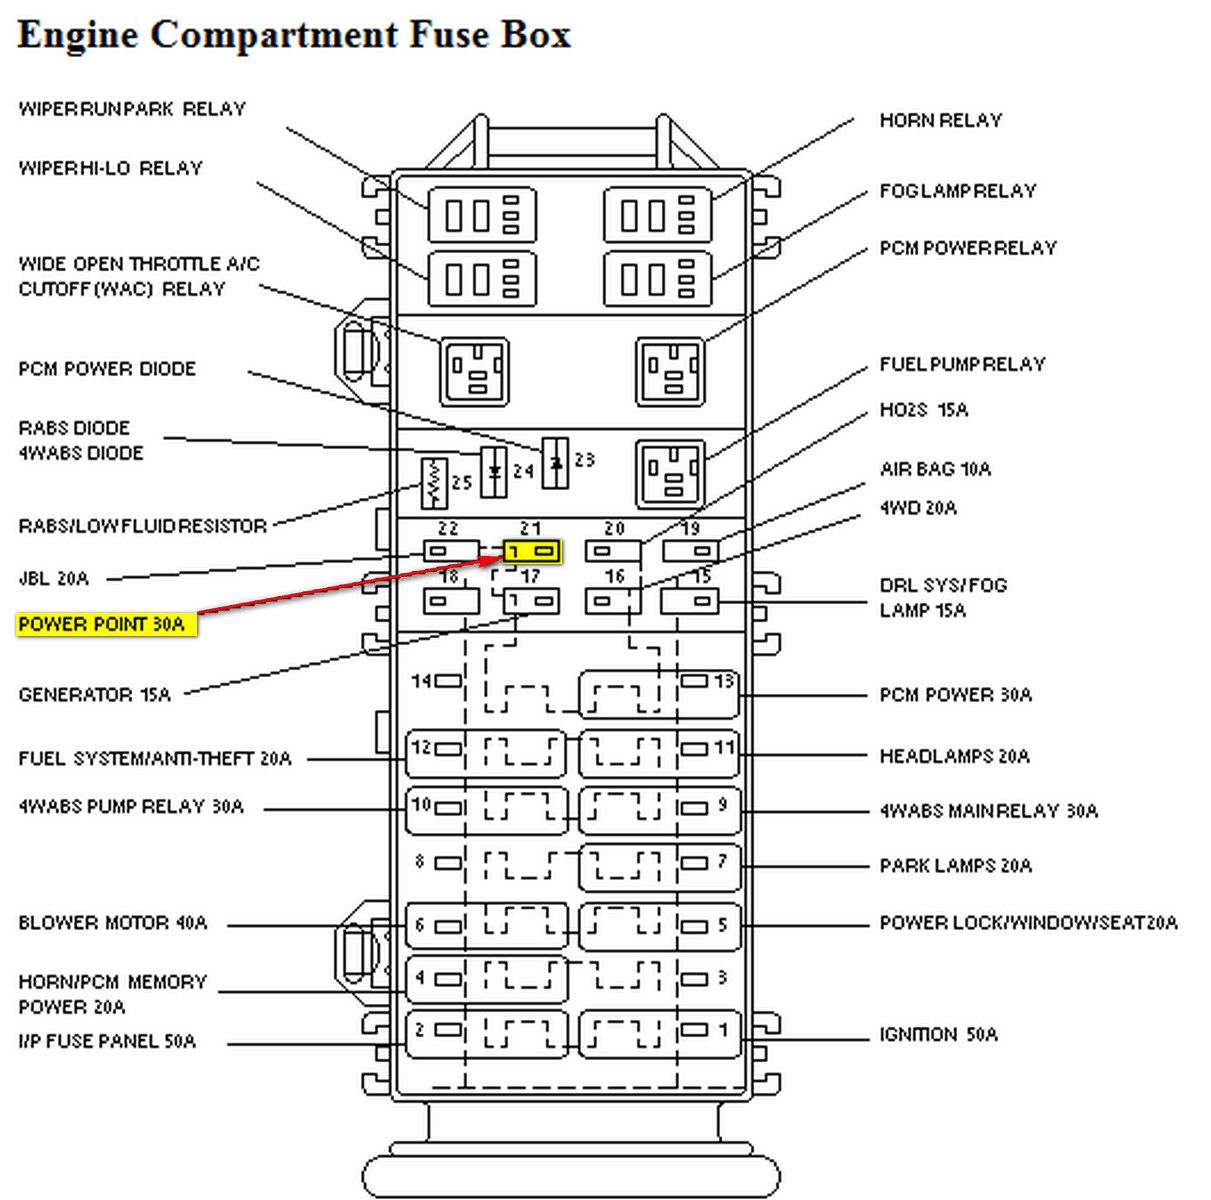 95 ford ranger fuse diagram wiring diagram note 1995 ranger fuse panel diagram [ 1211 x 1200 Pixel ]